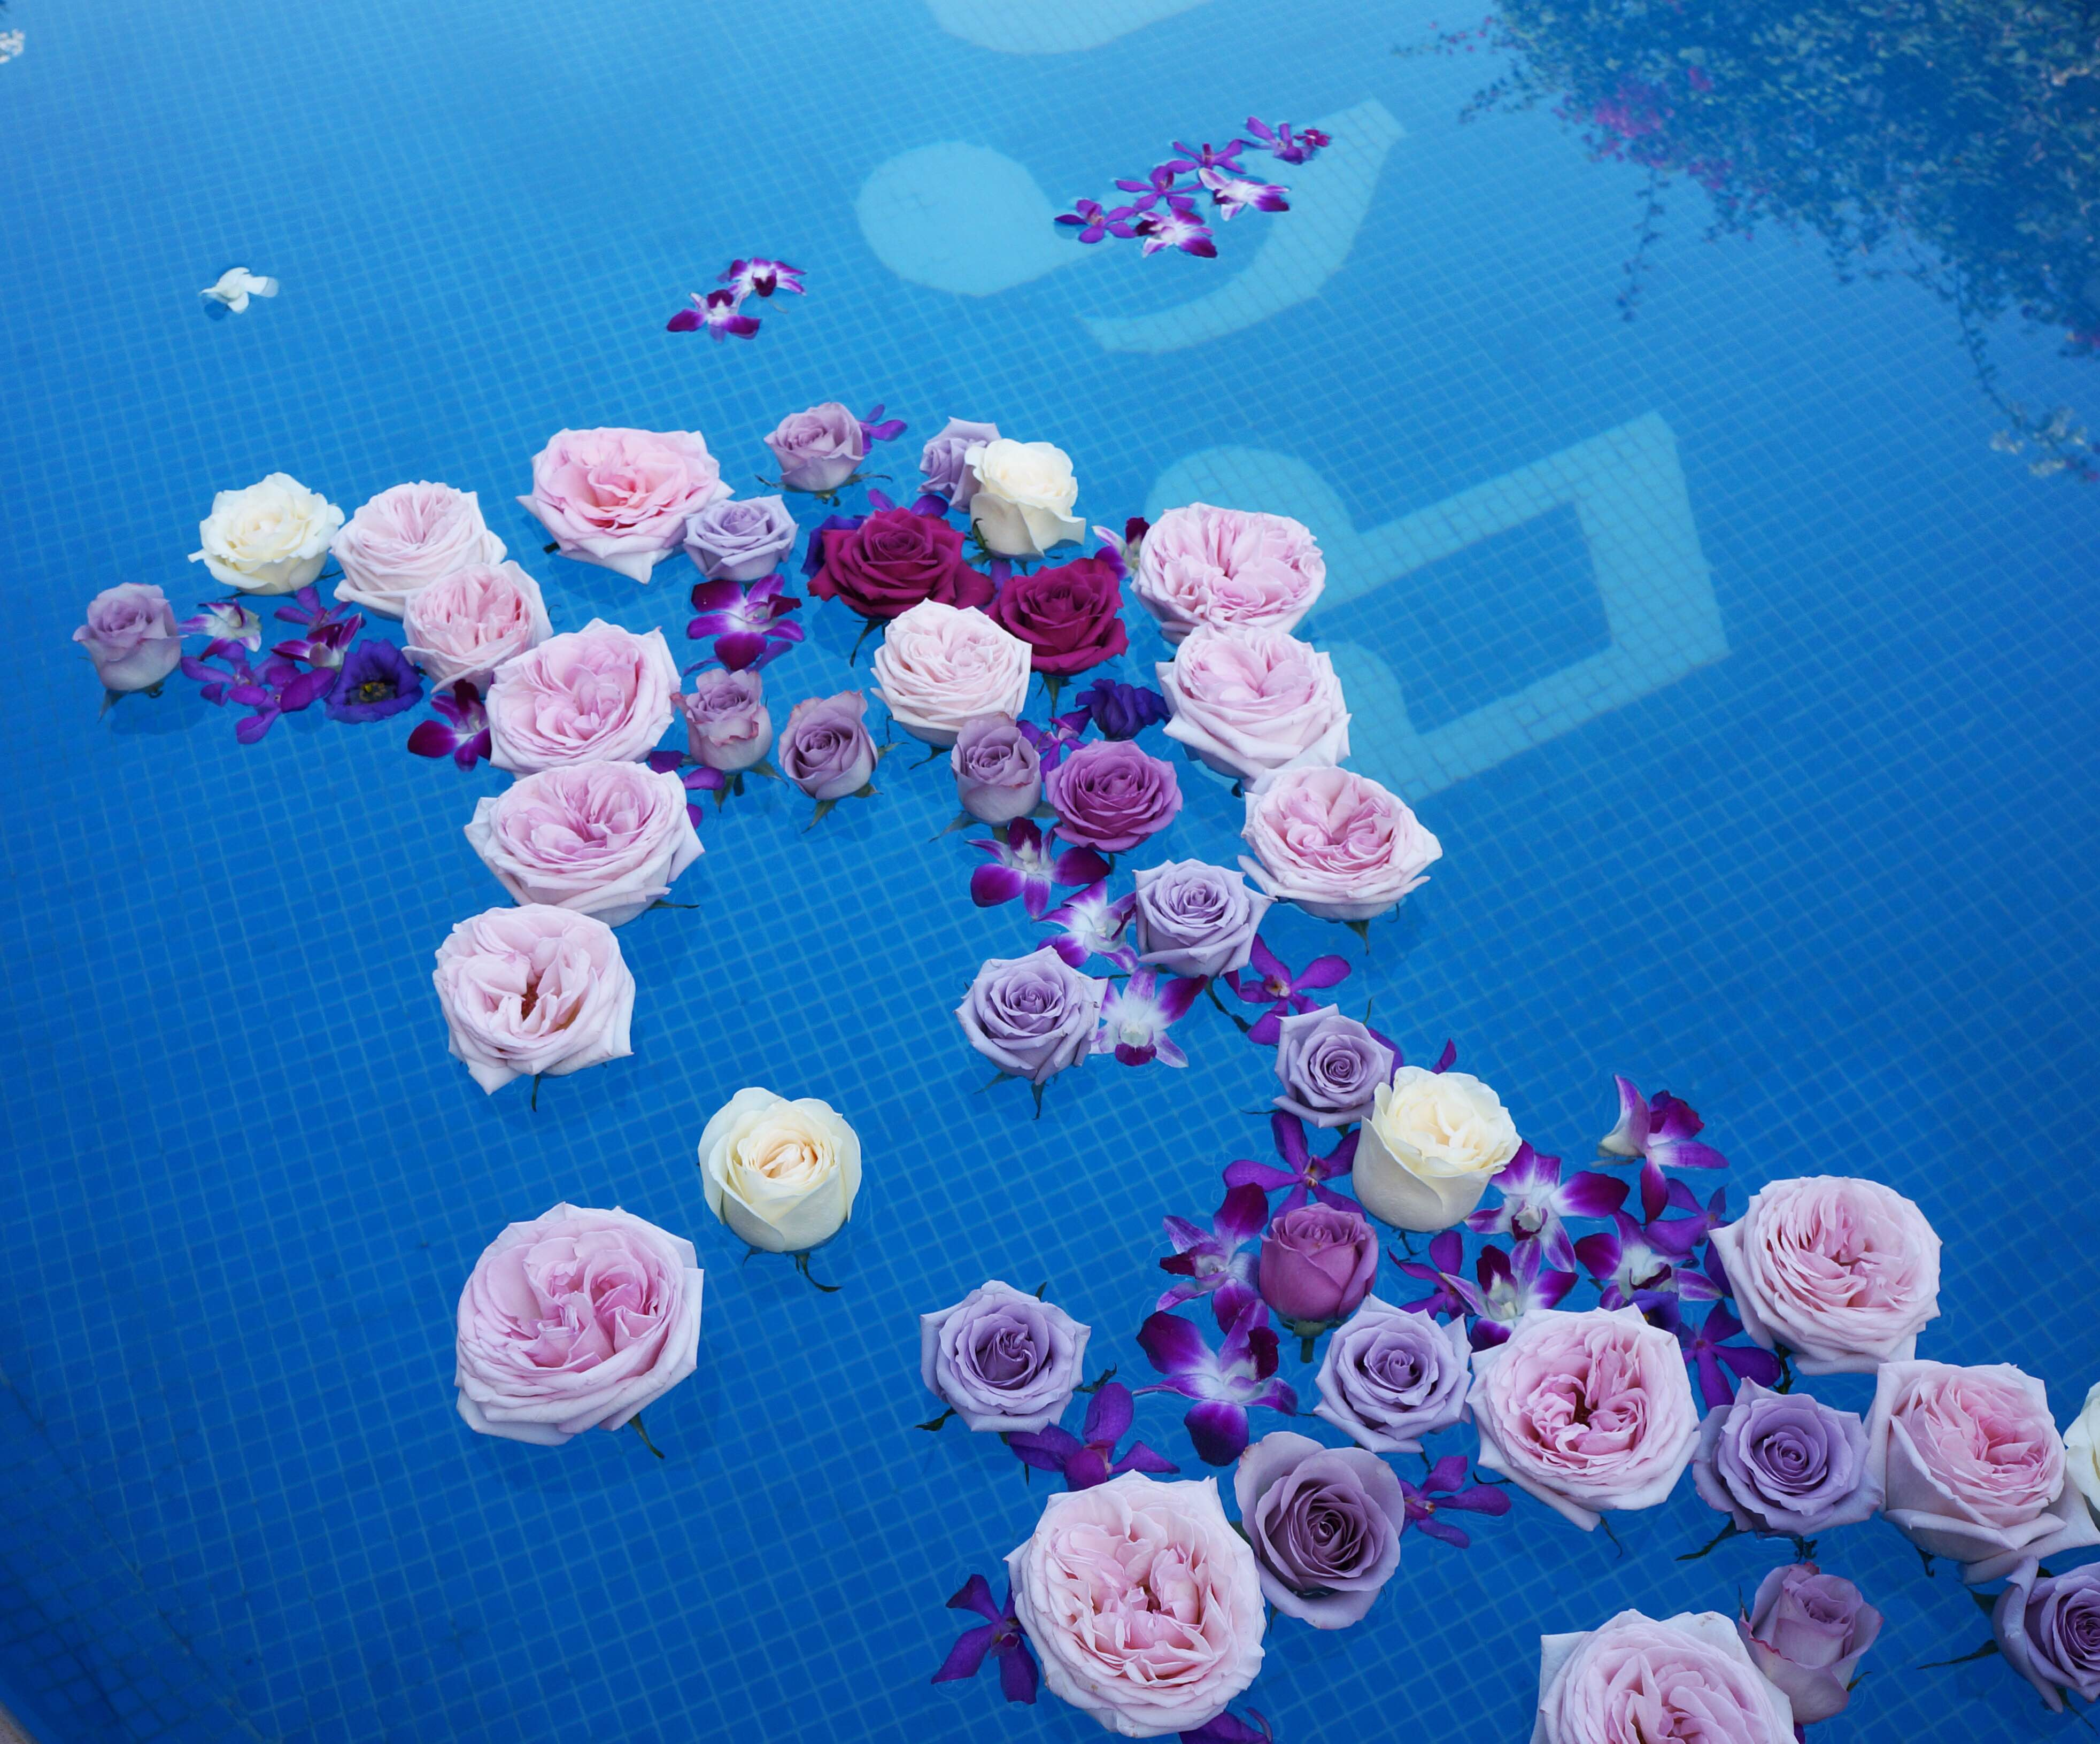 Floating Flower decorations